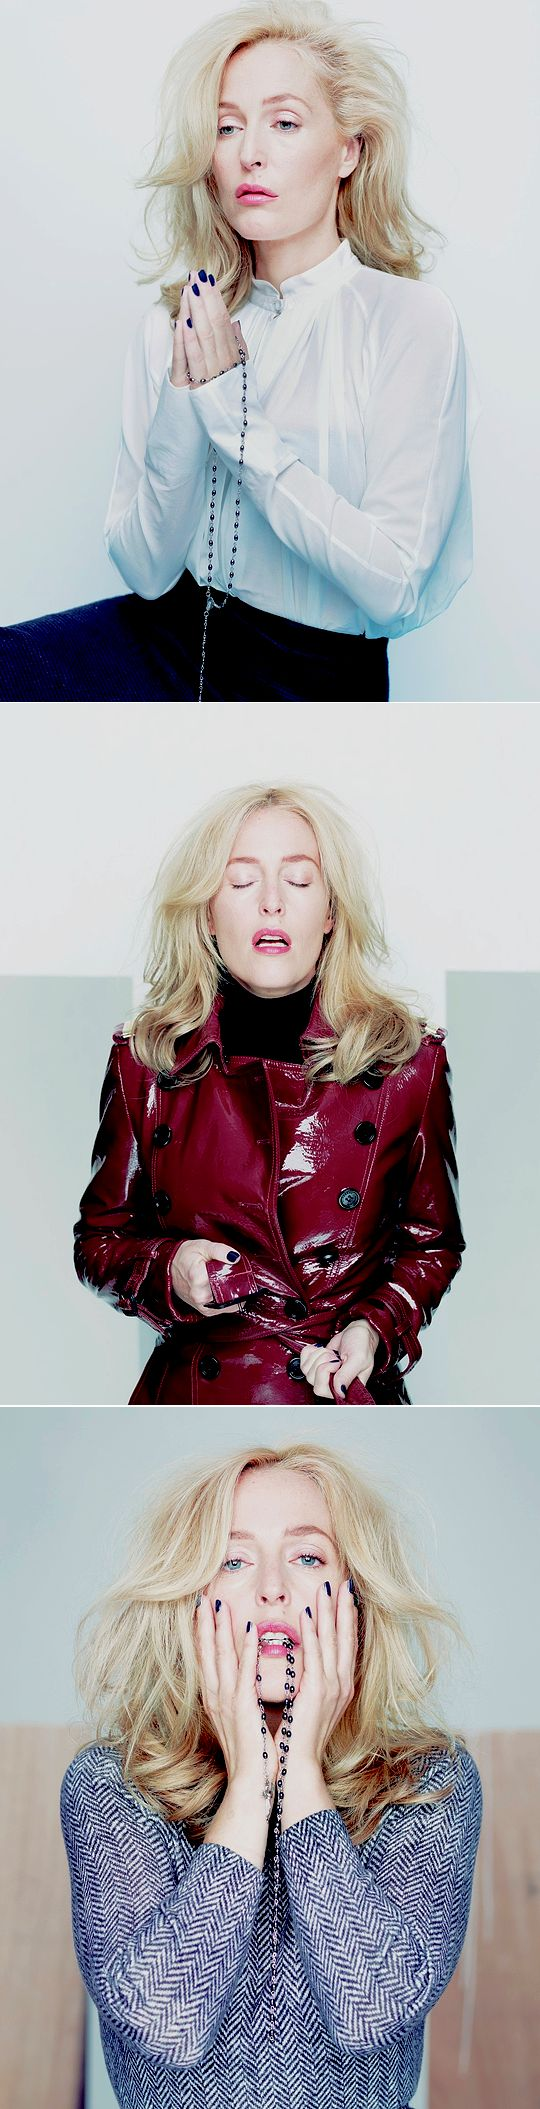 Gillian Anderson by Rankin for Hunger mag 2013.